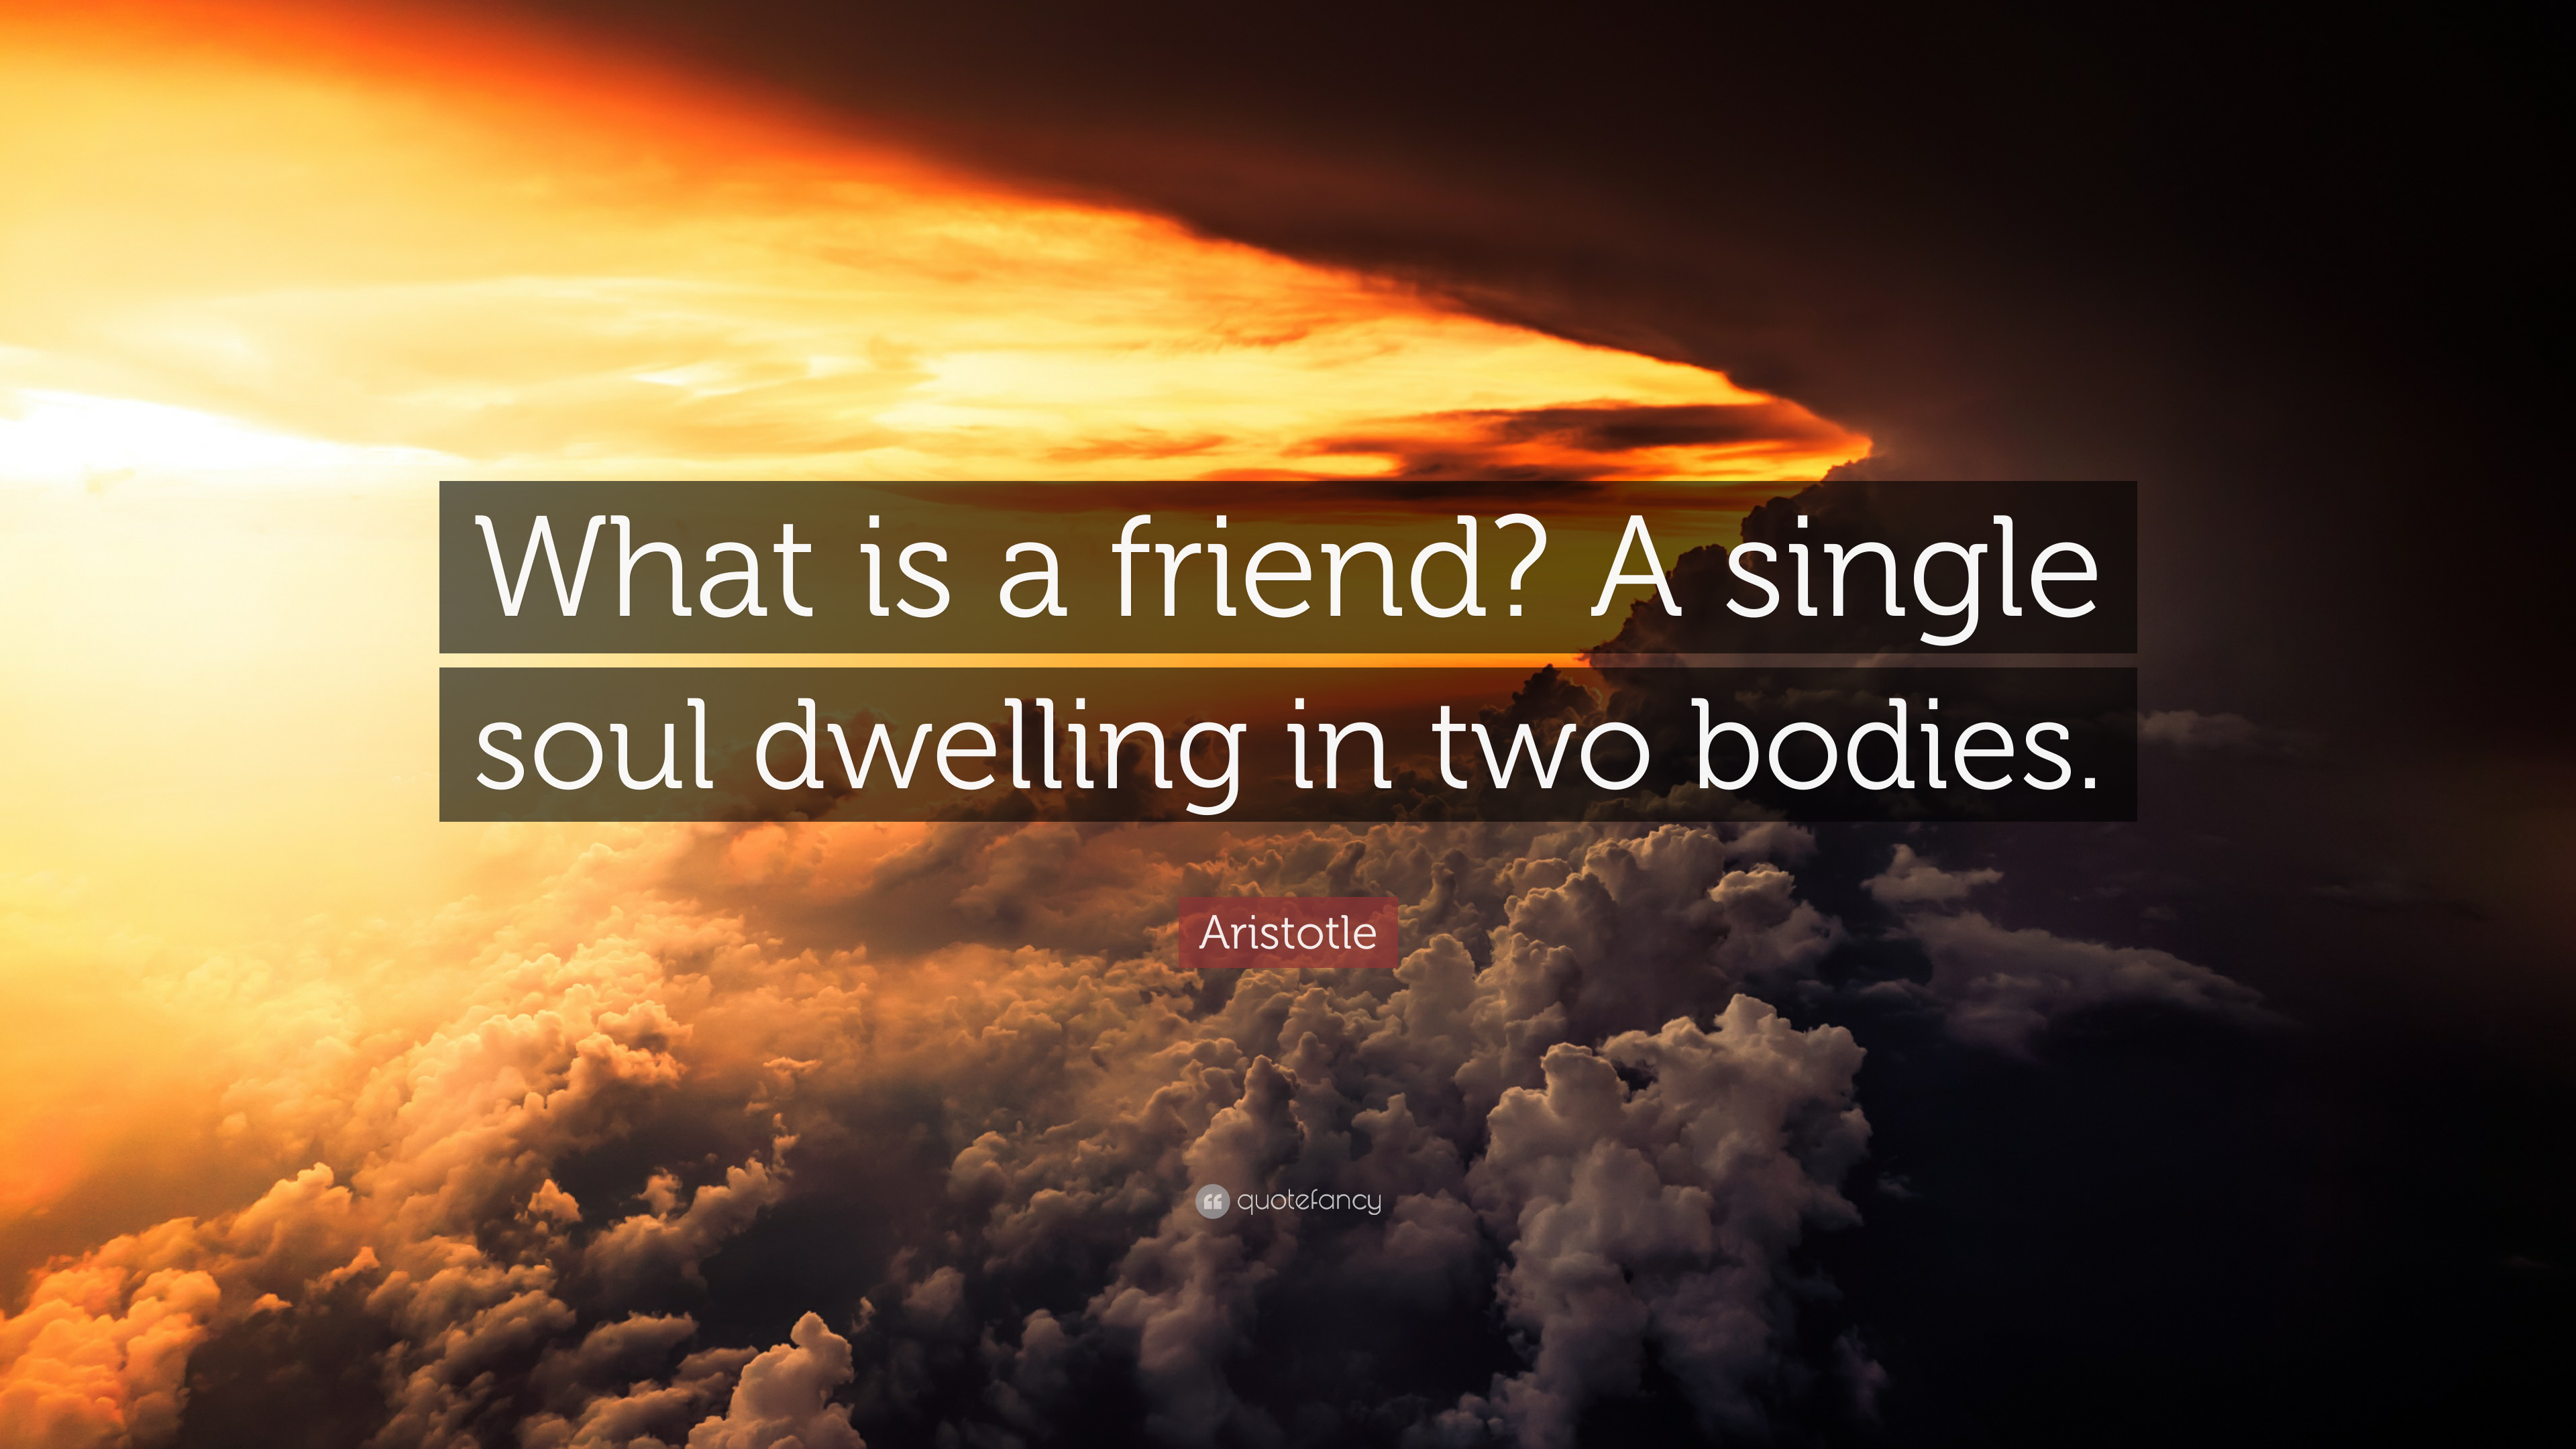 what is a friend a single soul dwelling in two bodies Friendship played a central role in ancient ethics and political philosophy   aristotle's reply was ''a single soul dwelling in two bodies.